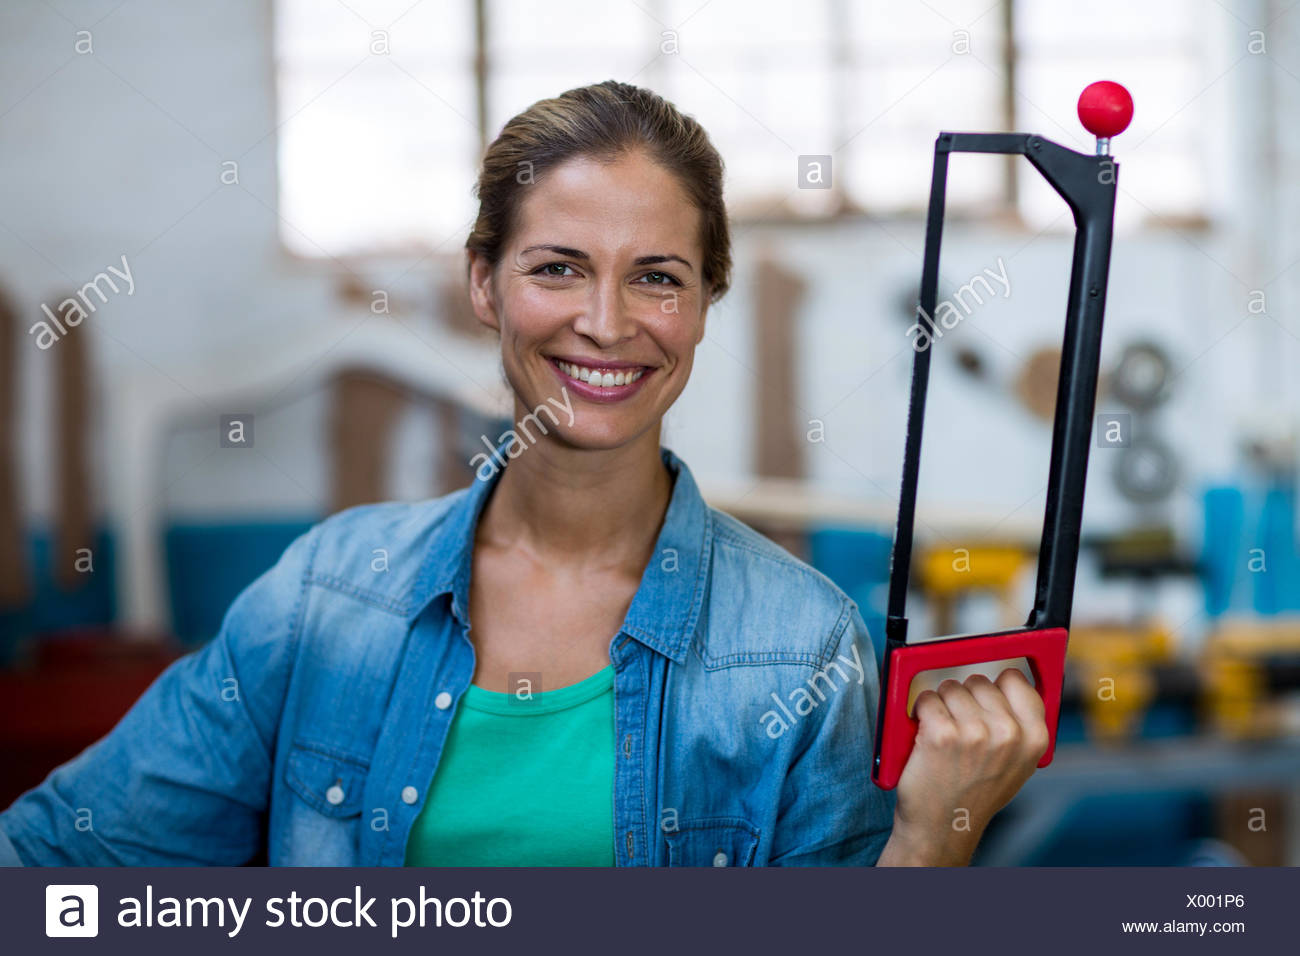 Happy female carpenter holding coping saw - Stock Image